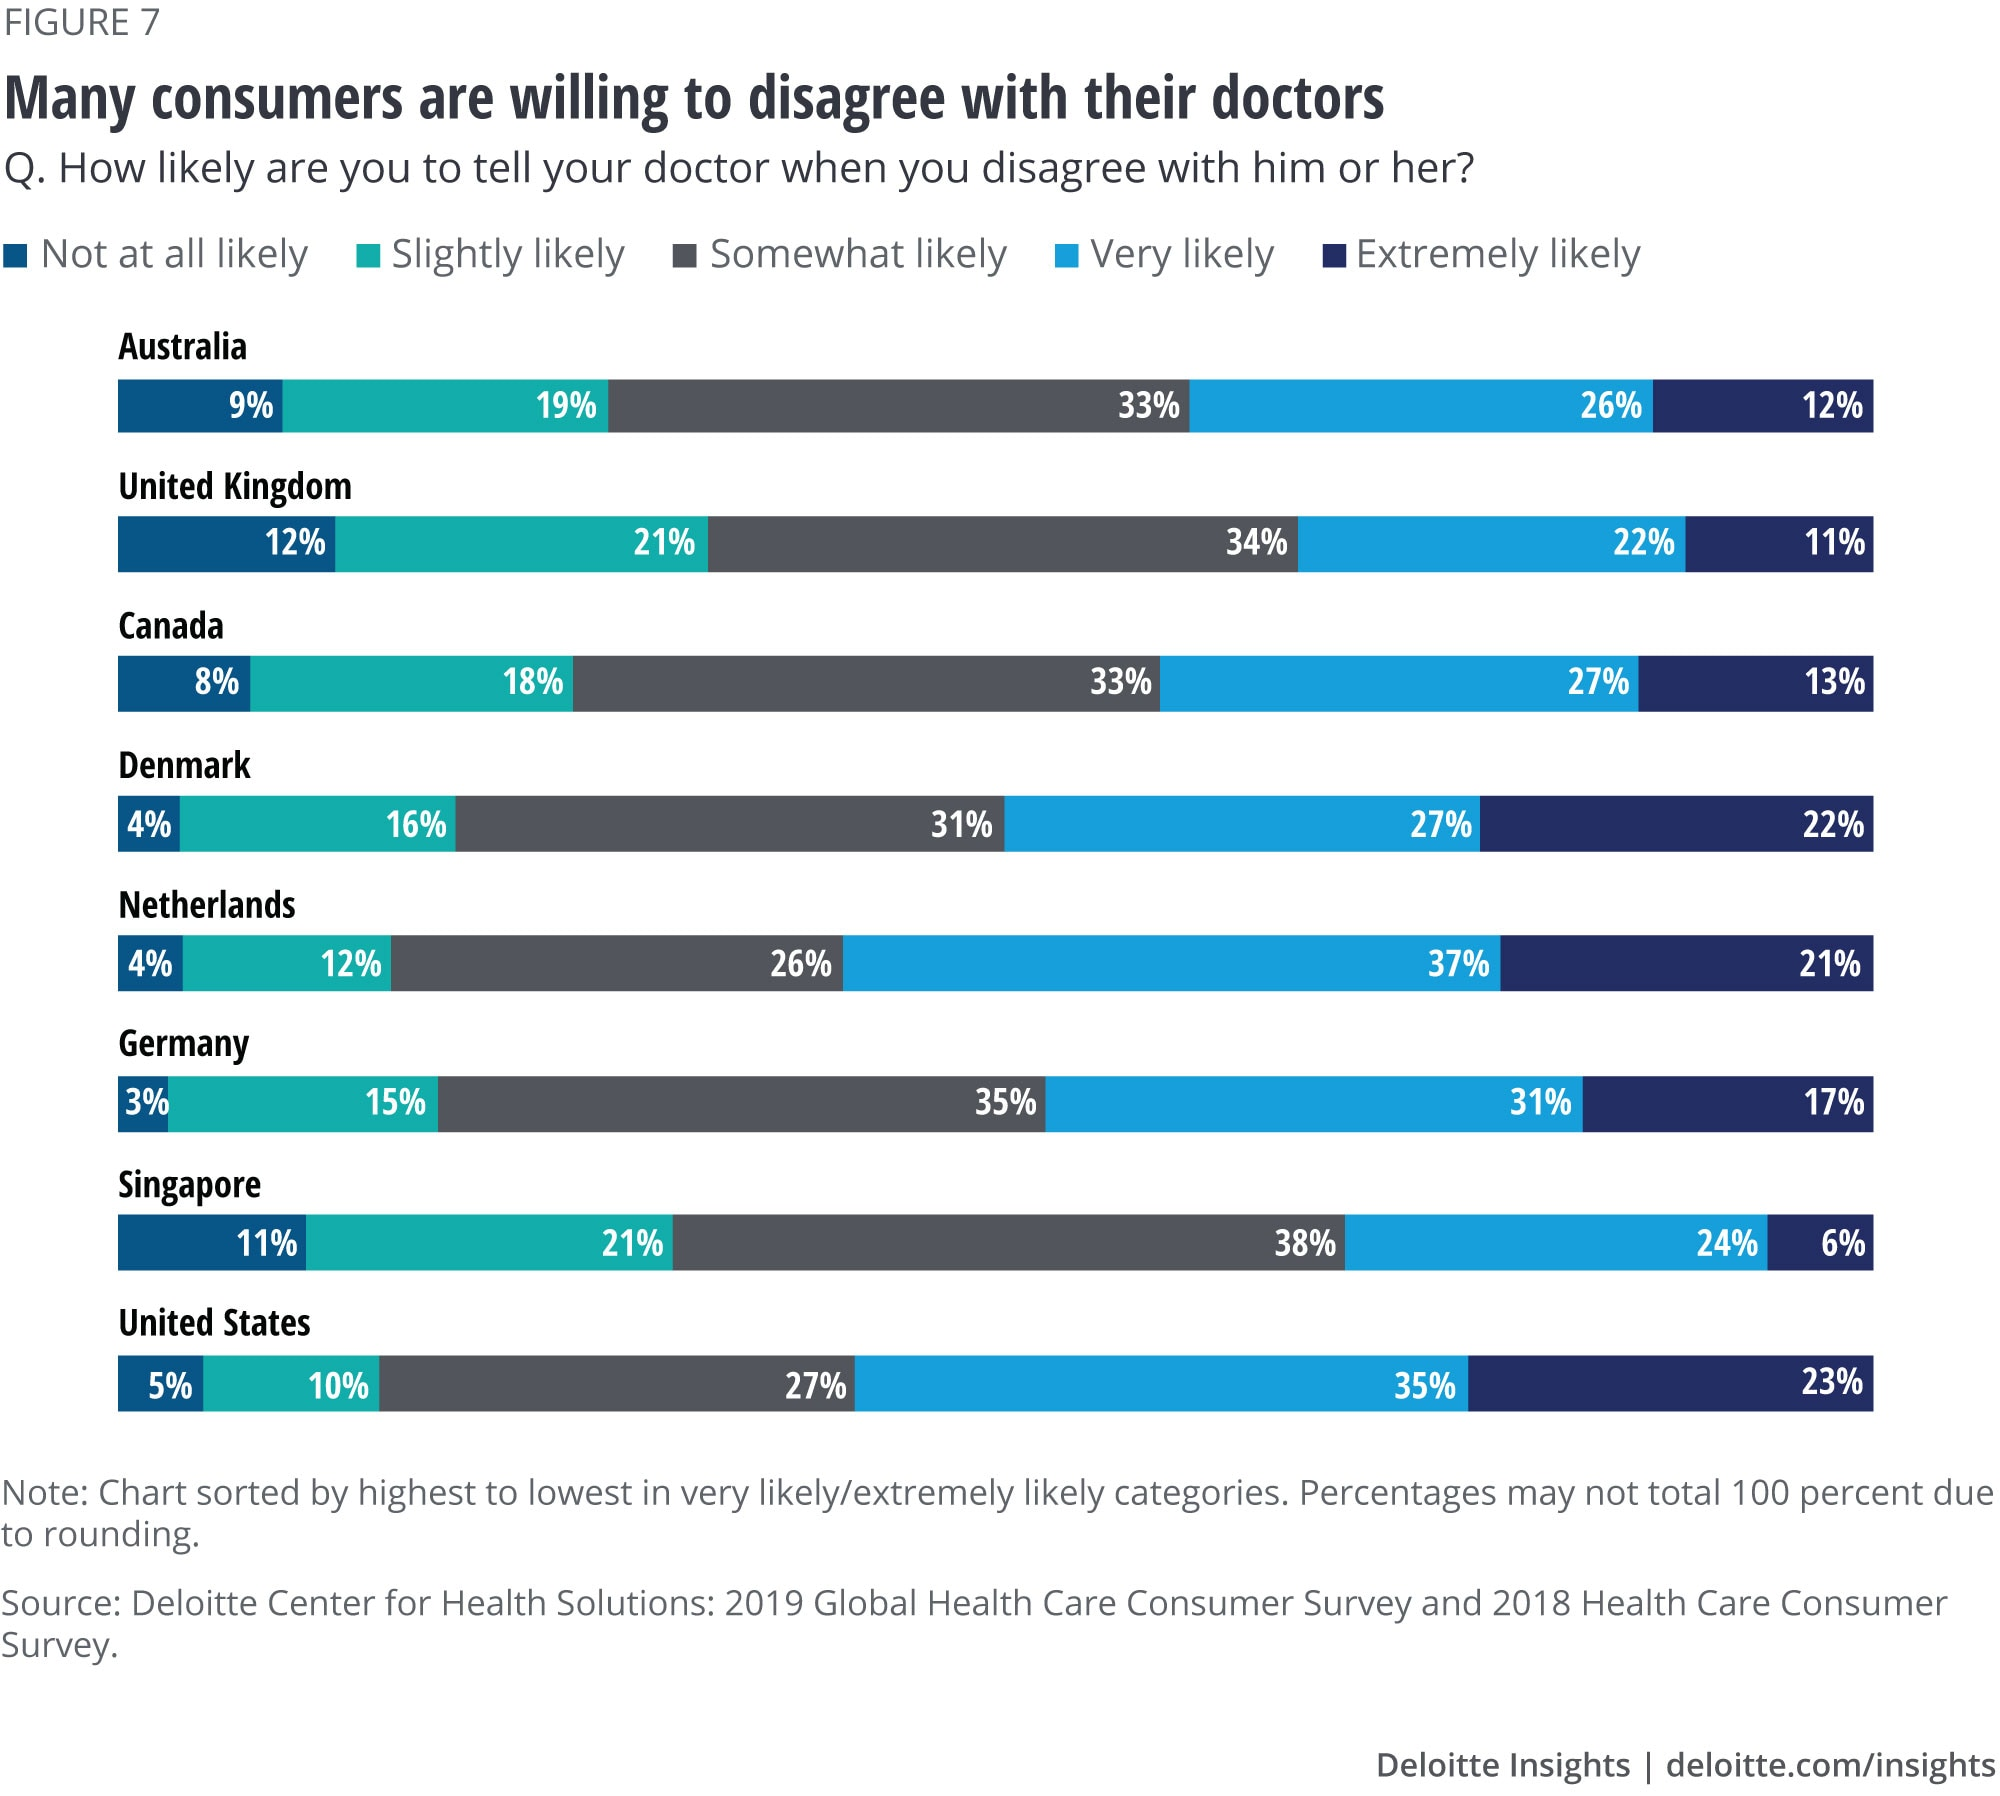 How likely are you to tell your doctor when you disagree with him or her?